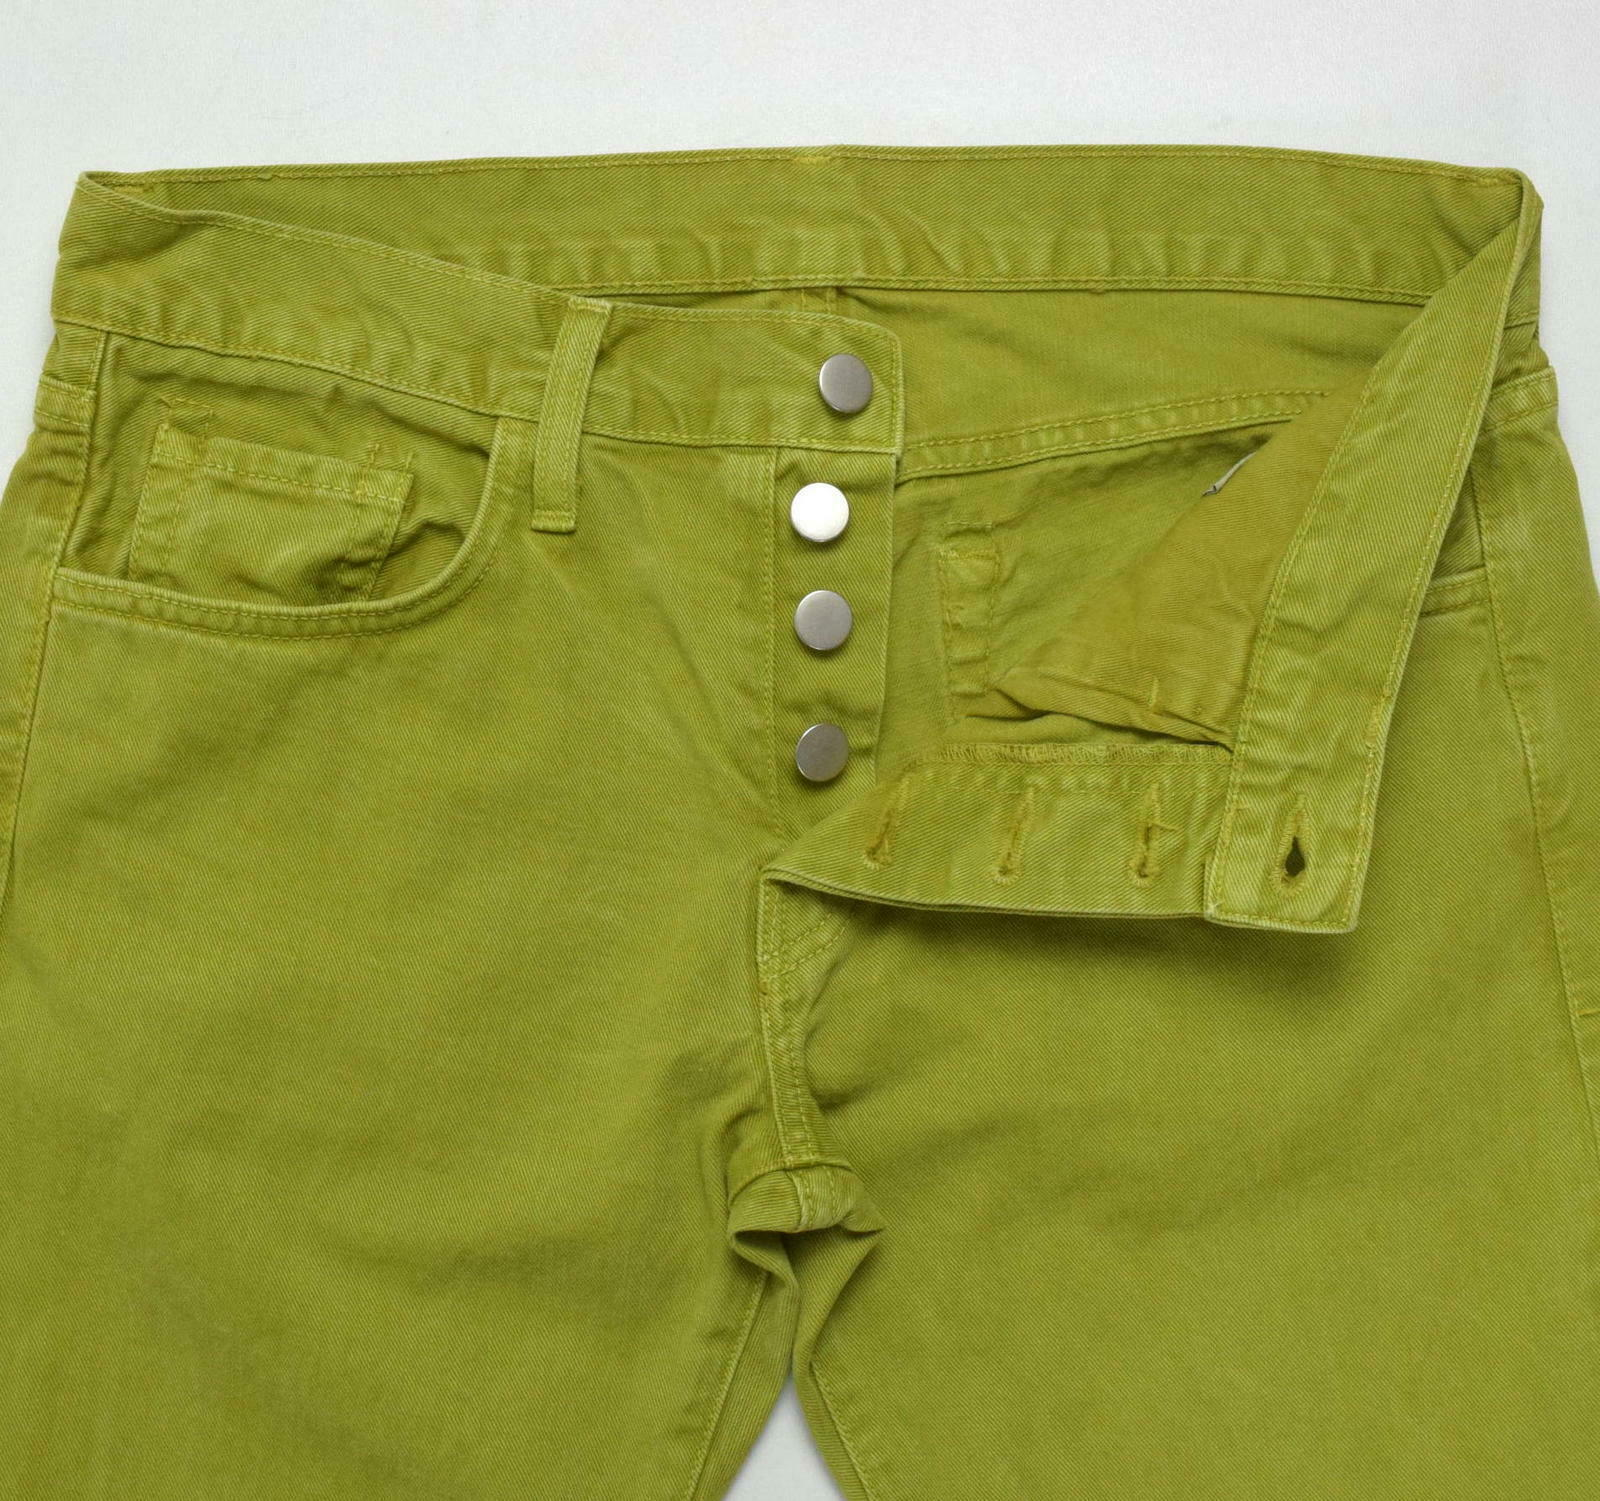 J Brand Green Denim Button Fly Jeans Pants Boot Cut Womens Size 32 x 32.5 image 5